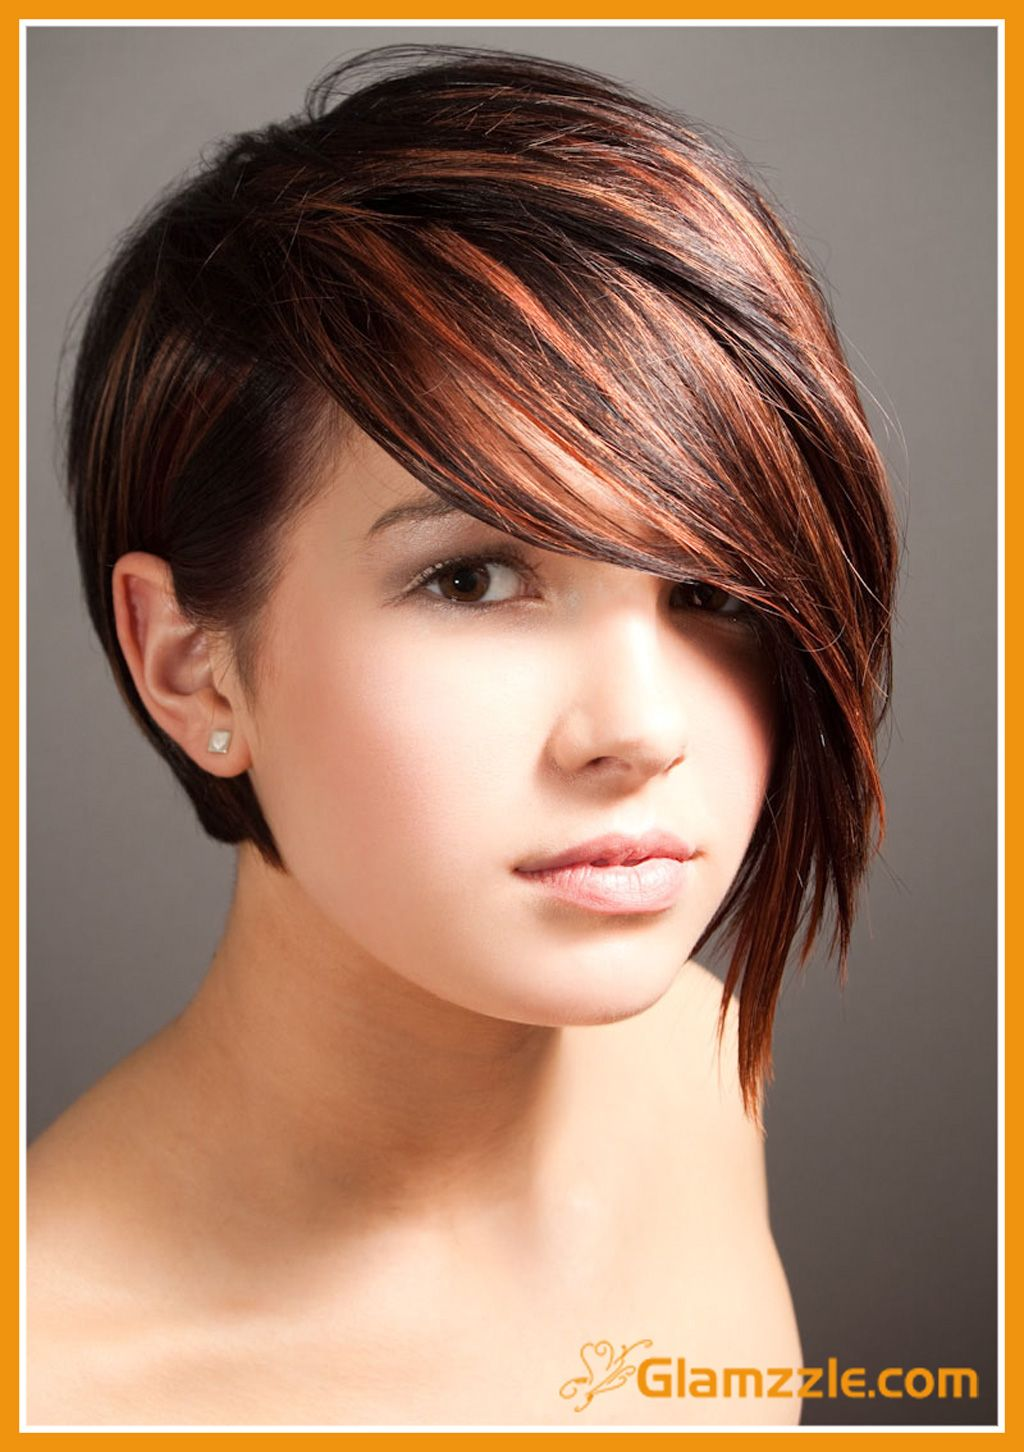 Hair styles with bangs for short hair short hairstyles - Short Hairstyle Bangs Very Short Haircuts With Bangs For Women Wallpaper